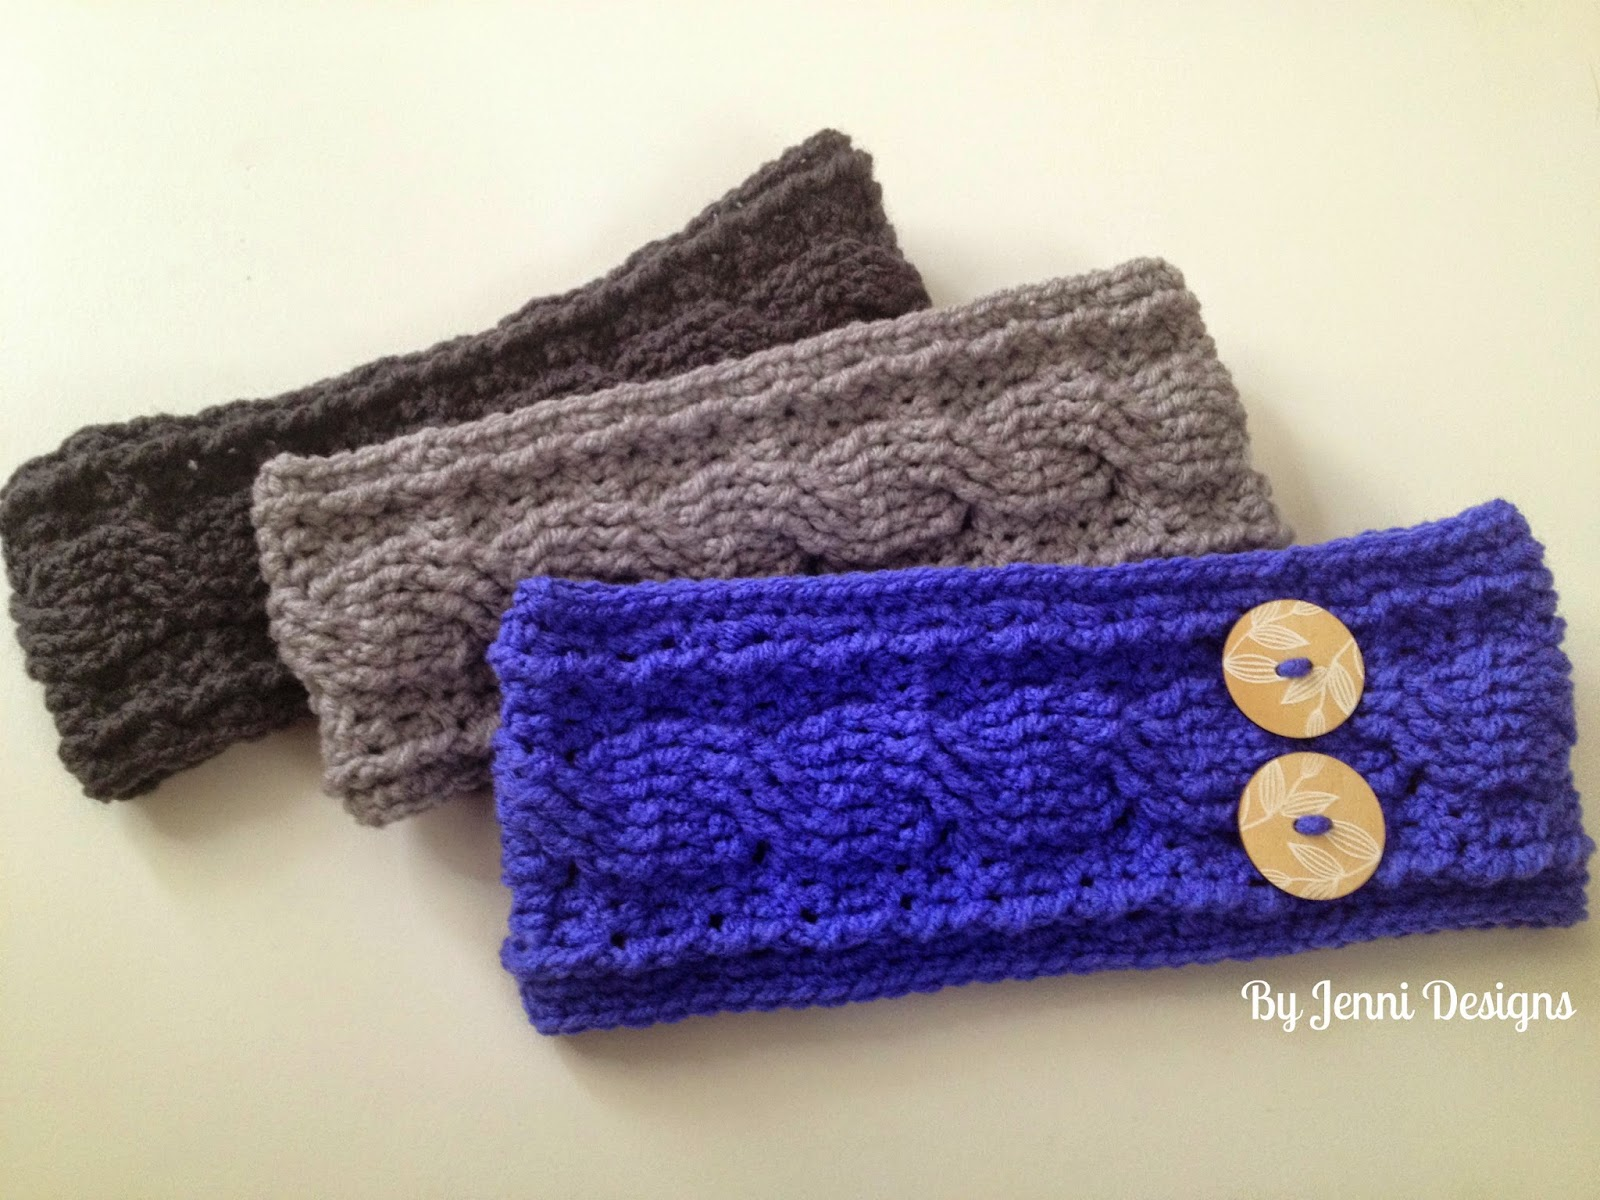 Crochet Ear Warmer : By Jenni Designs: Crochet Cable Ear Warmer Pattern